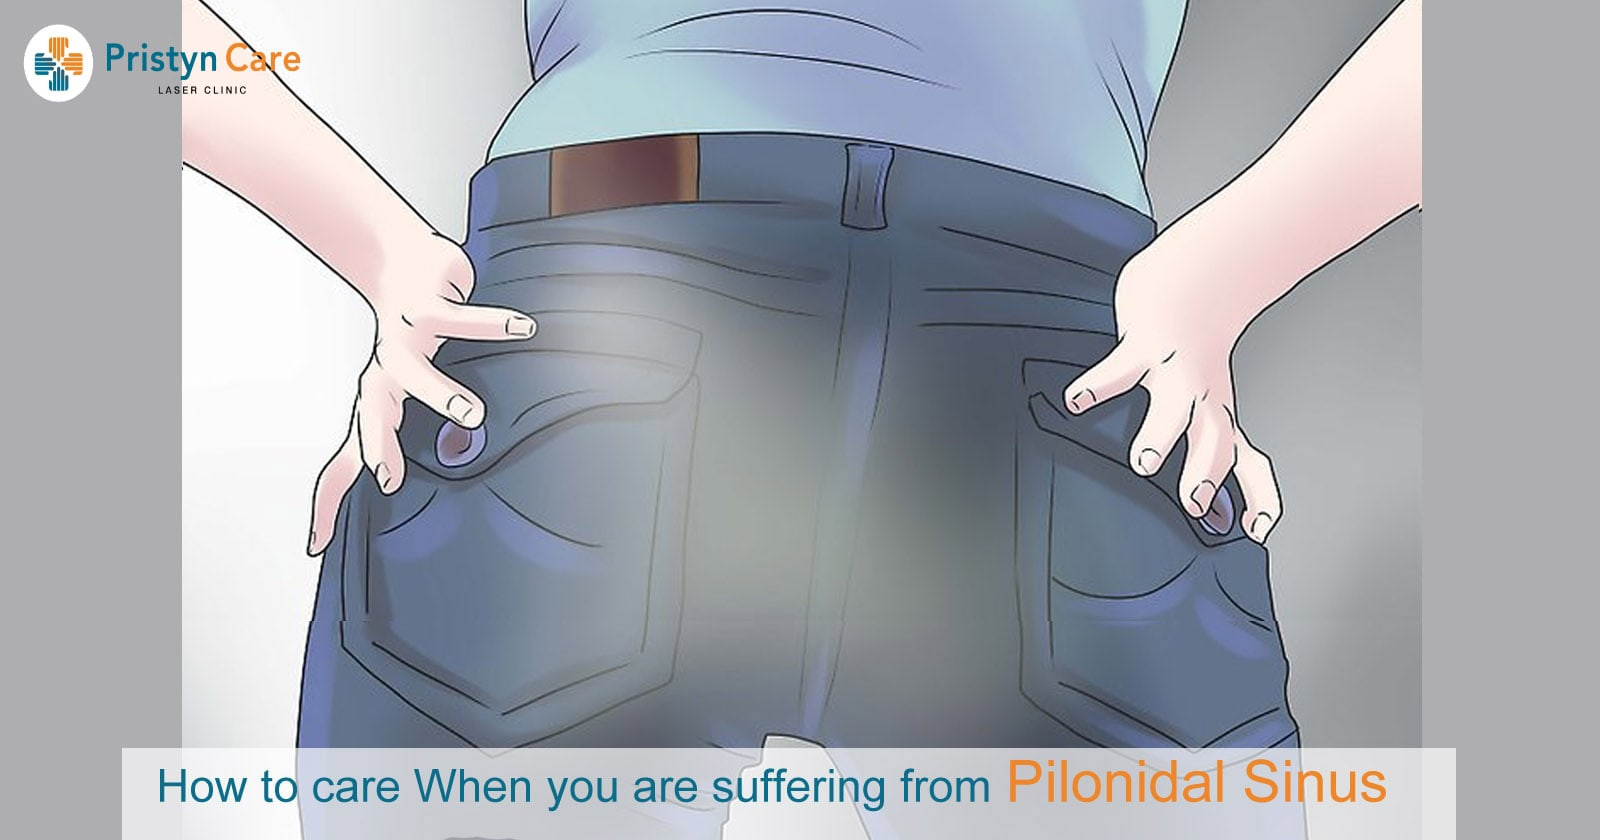 How to care When you are suffering from Pilonidal Sinus